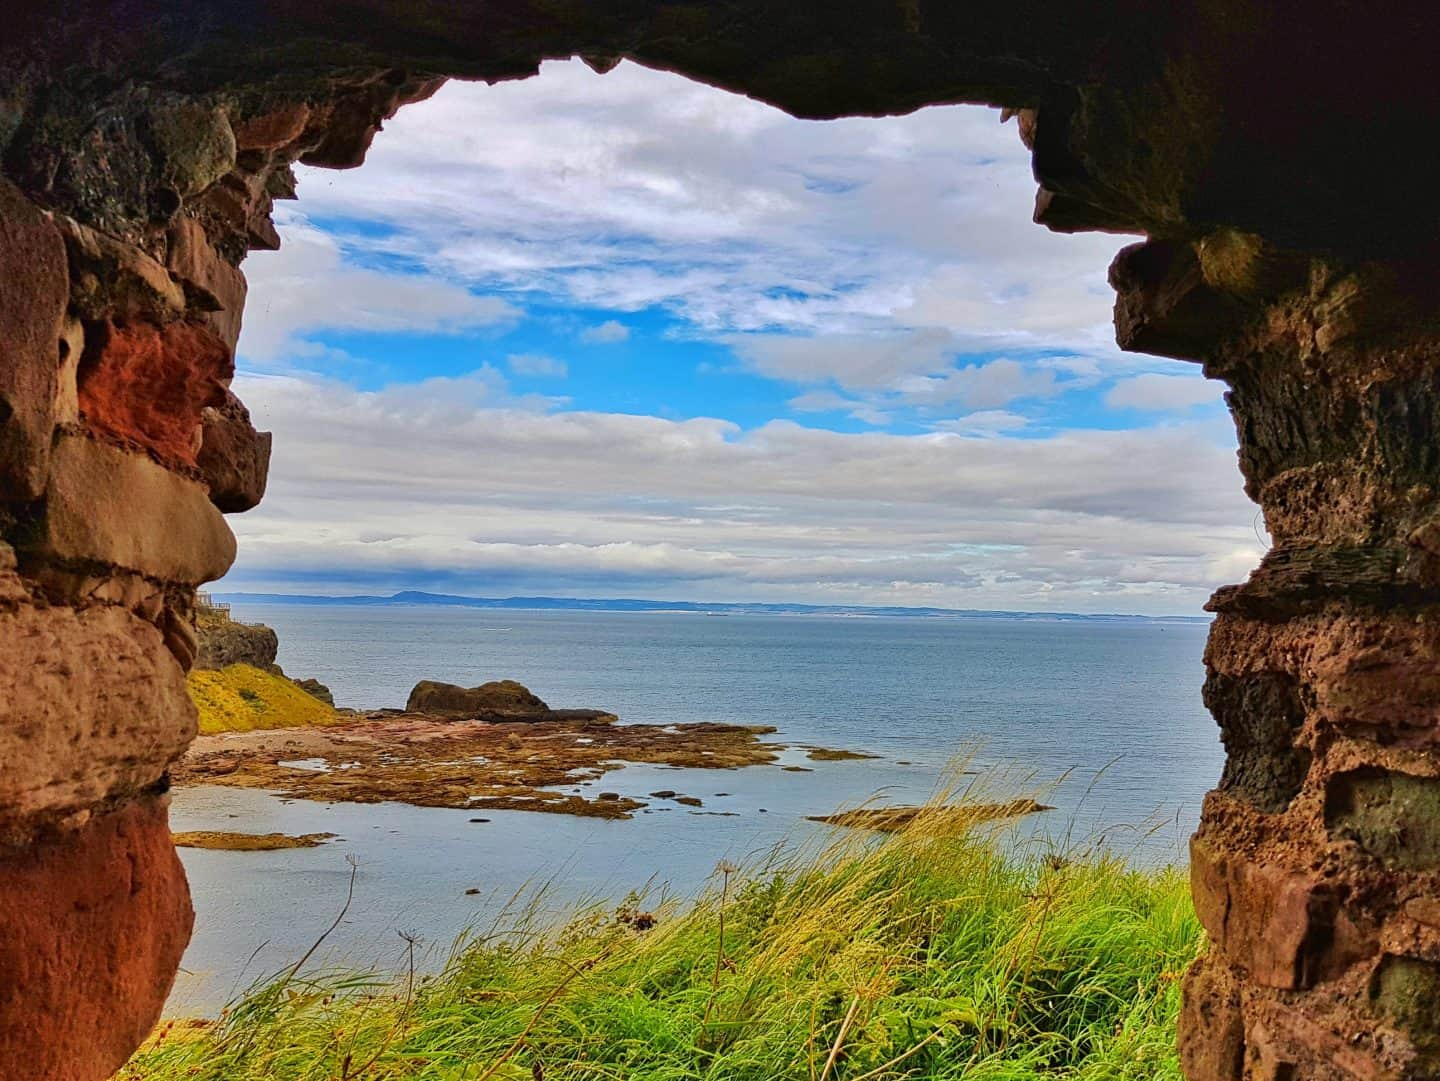 Tantallon Castle and Seacliff Beach East Lothian Scotland - view through window of castle